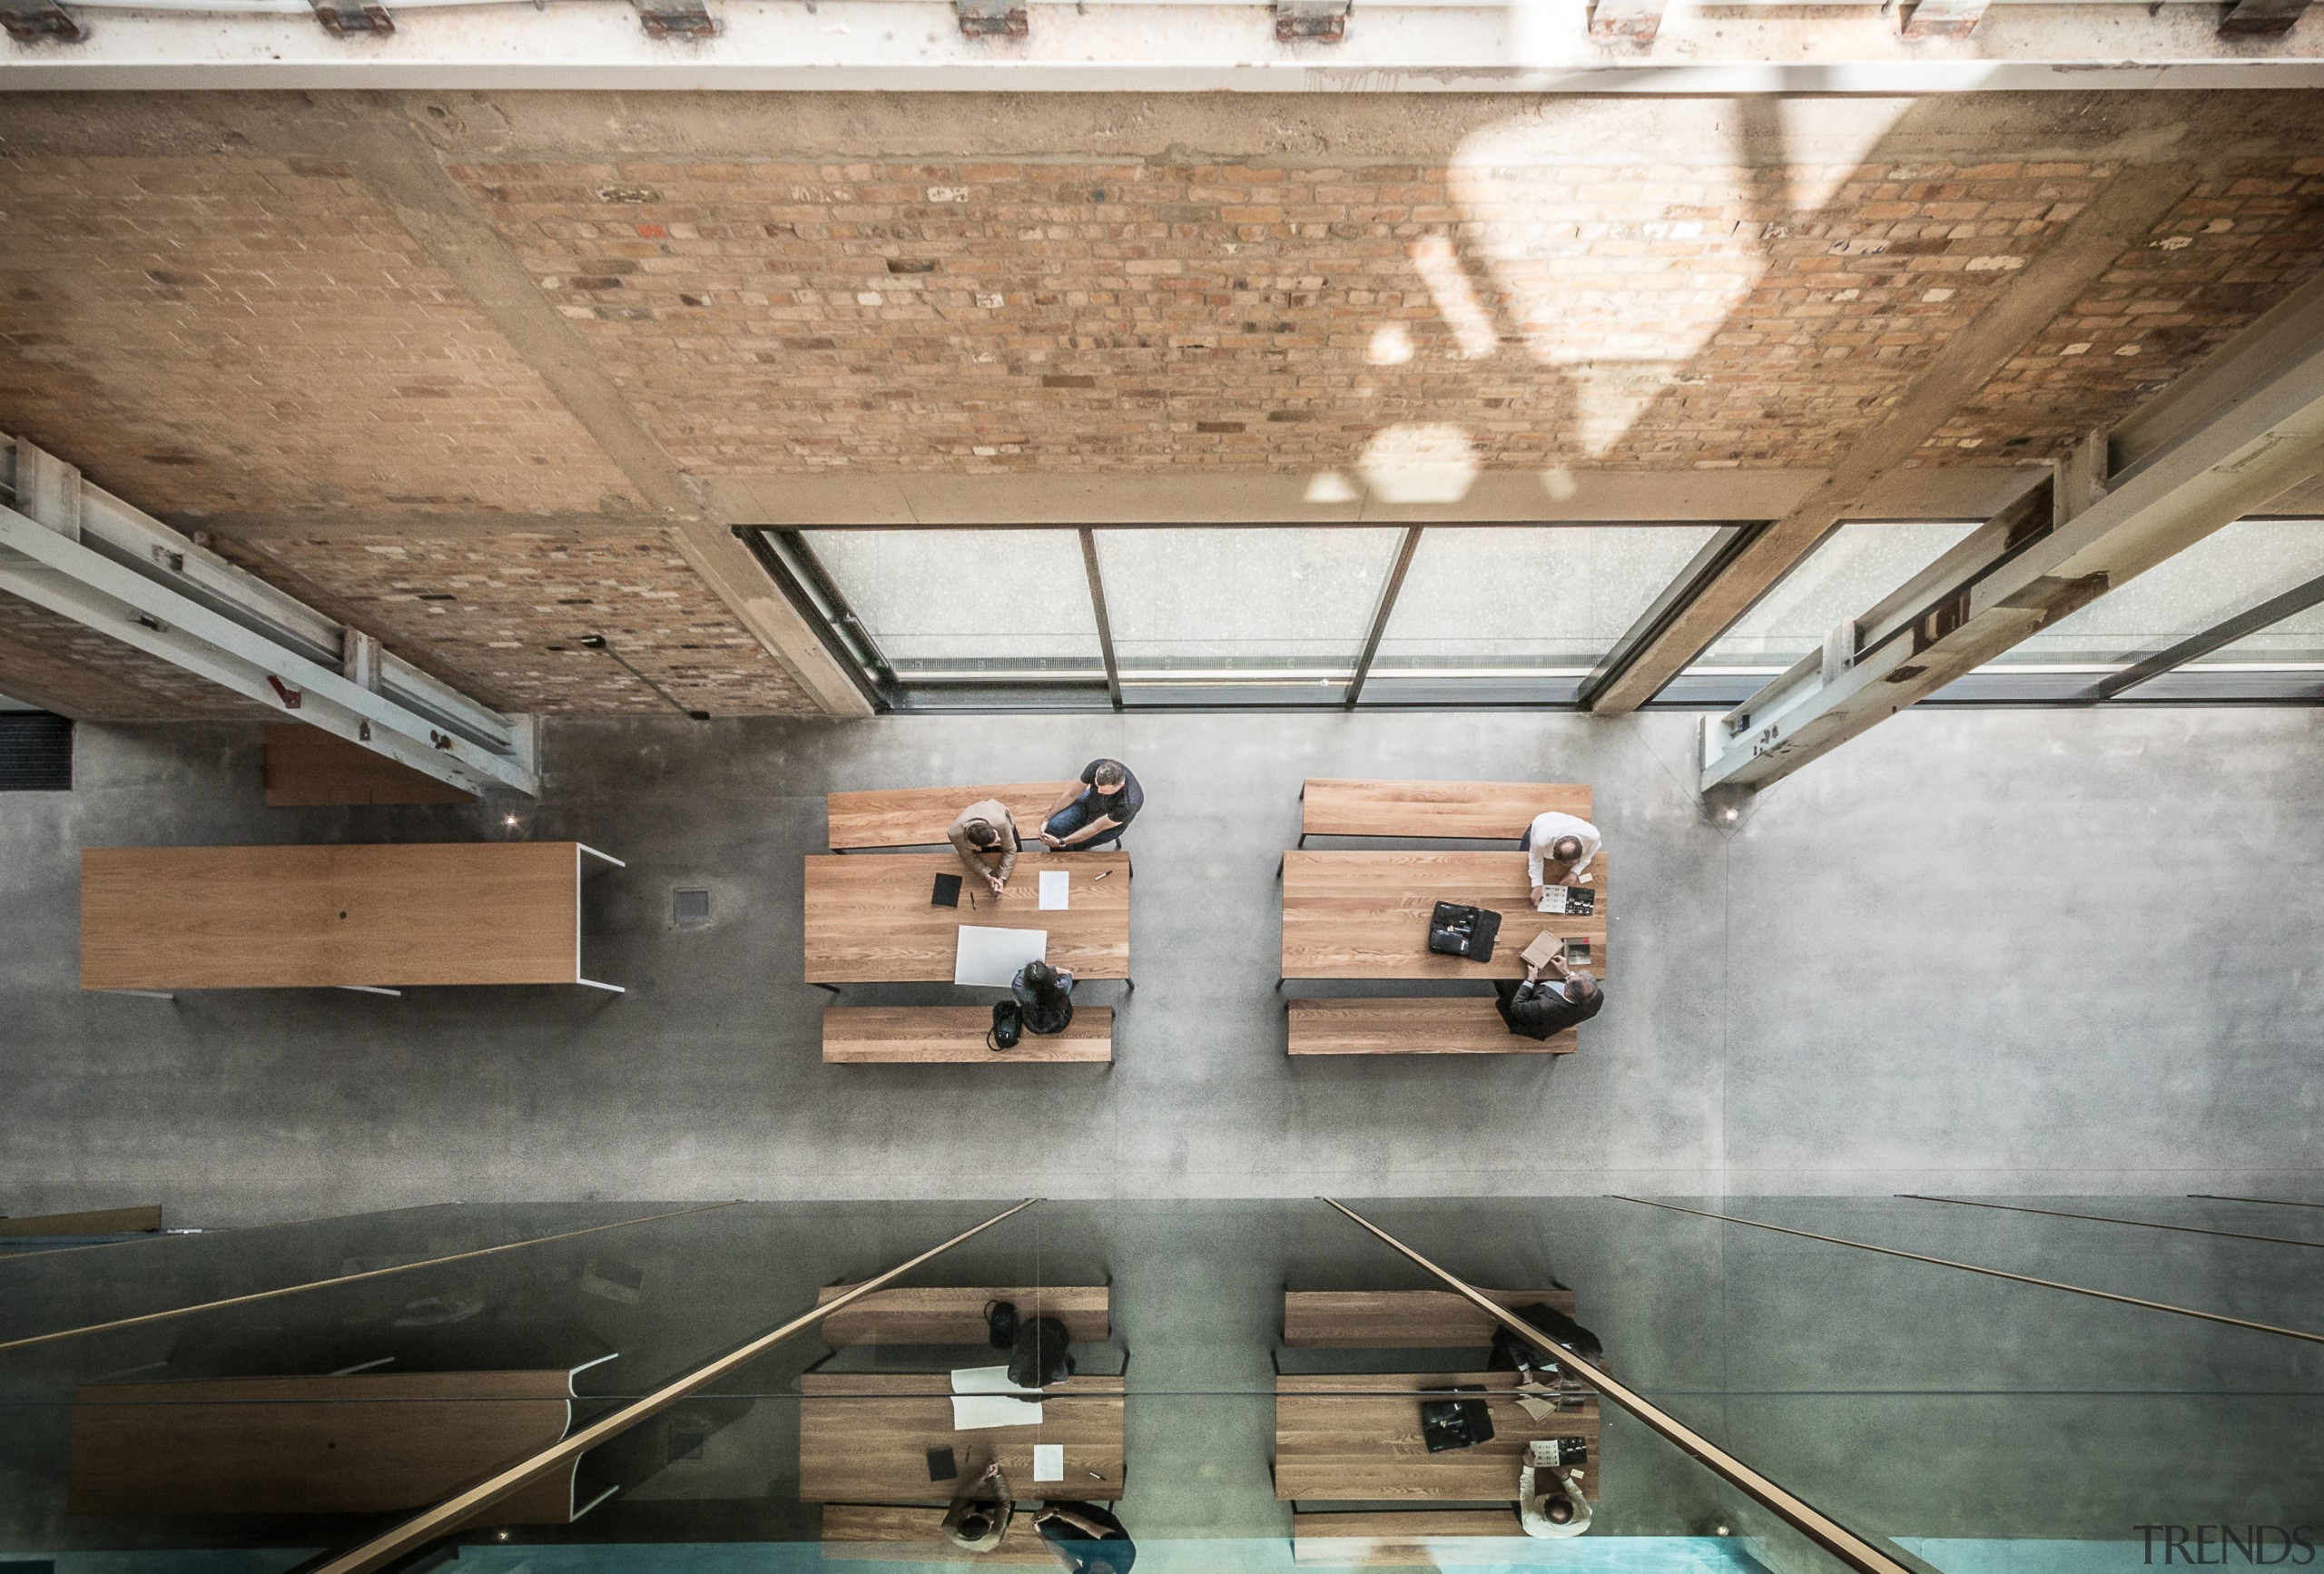 The Warren & Mahoney cafe spills out into architecture, ceiling, daylighting, floor, interior design, tourist attraction, wood, gray